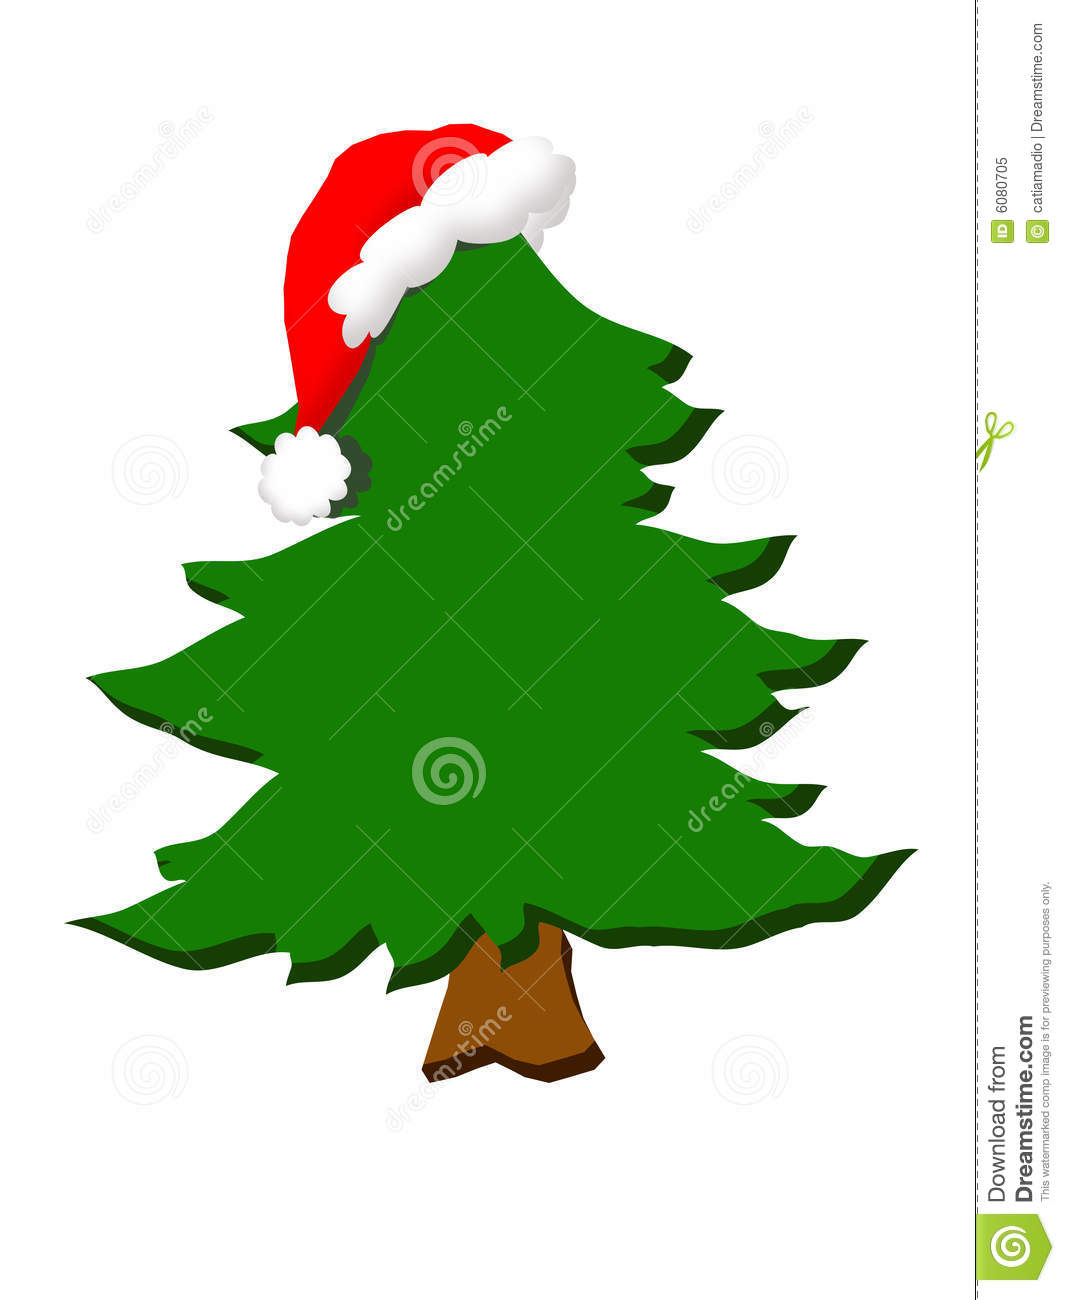 Christmas Clipart Royalty Free Stock Photo - Image: 6080705